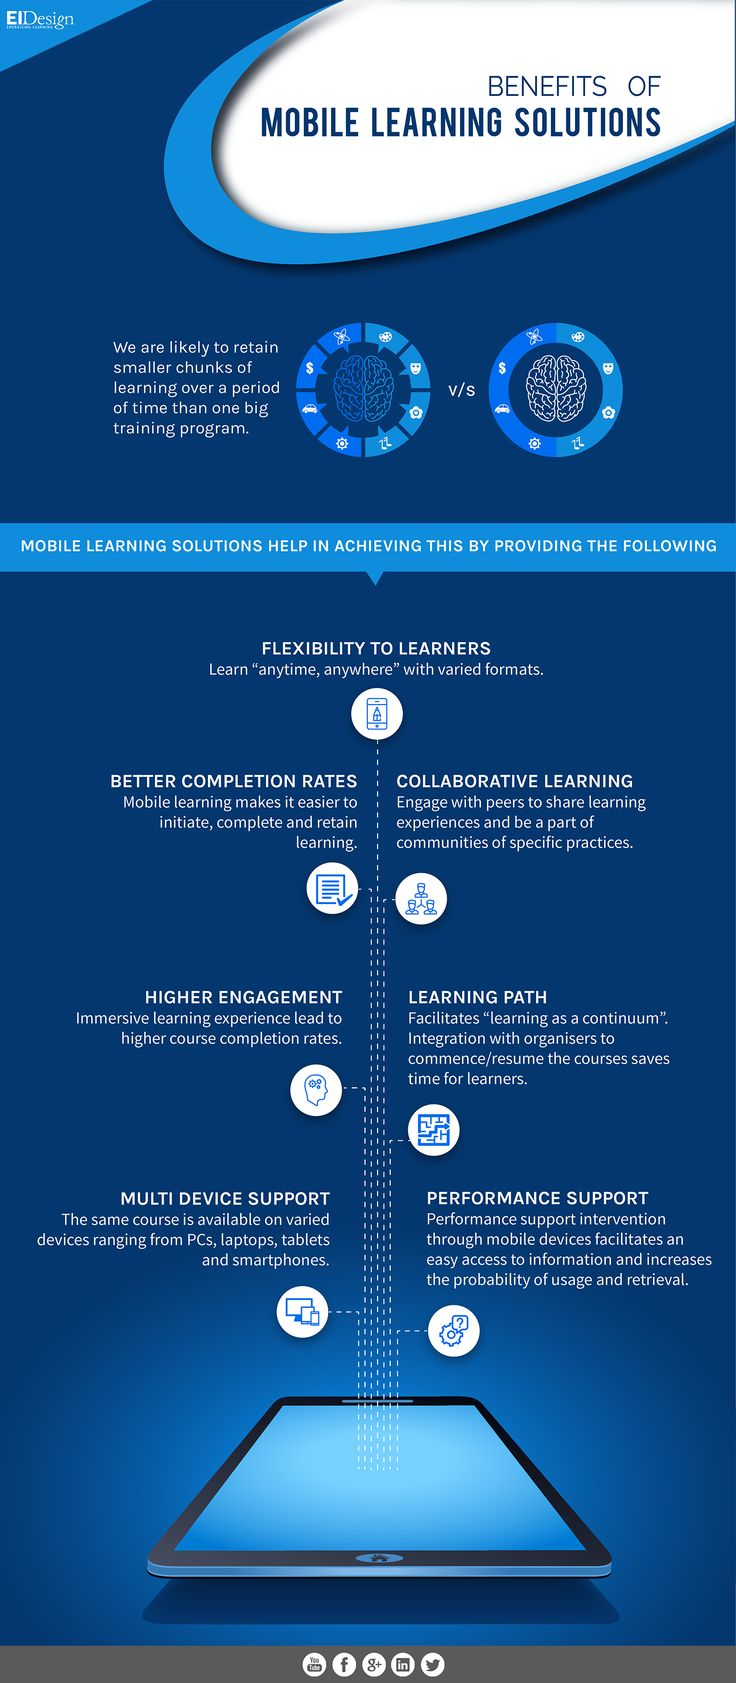 Benefits of Mobile Learning Solutions Infographic - http://elearninginfographics.com/mobile-learning-solutions-infographic/